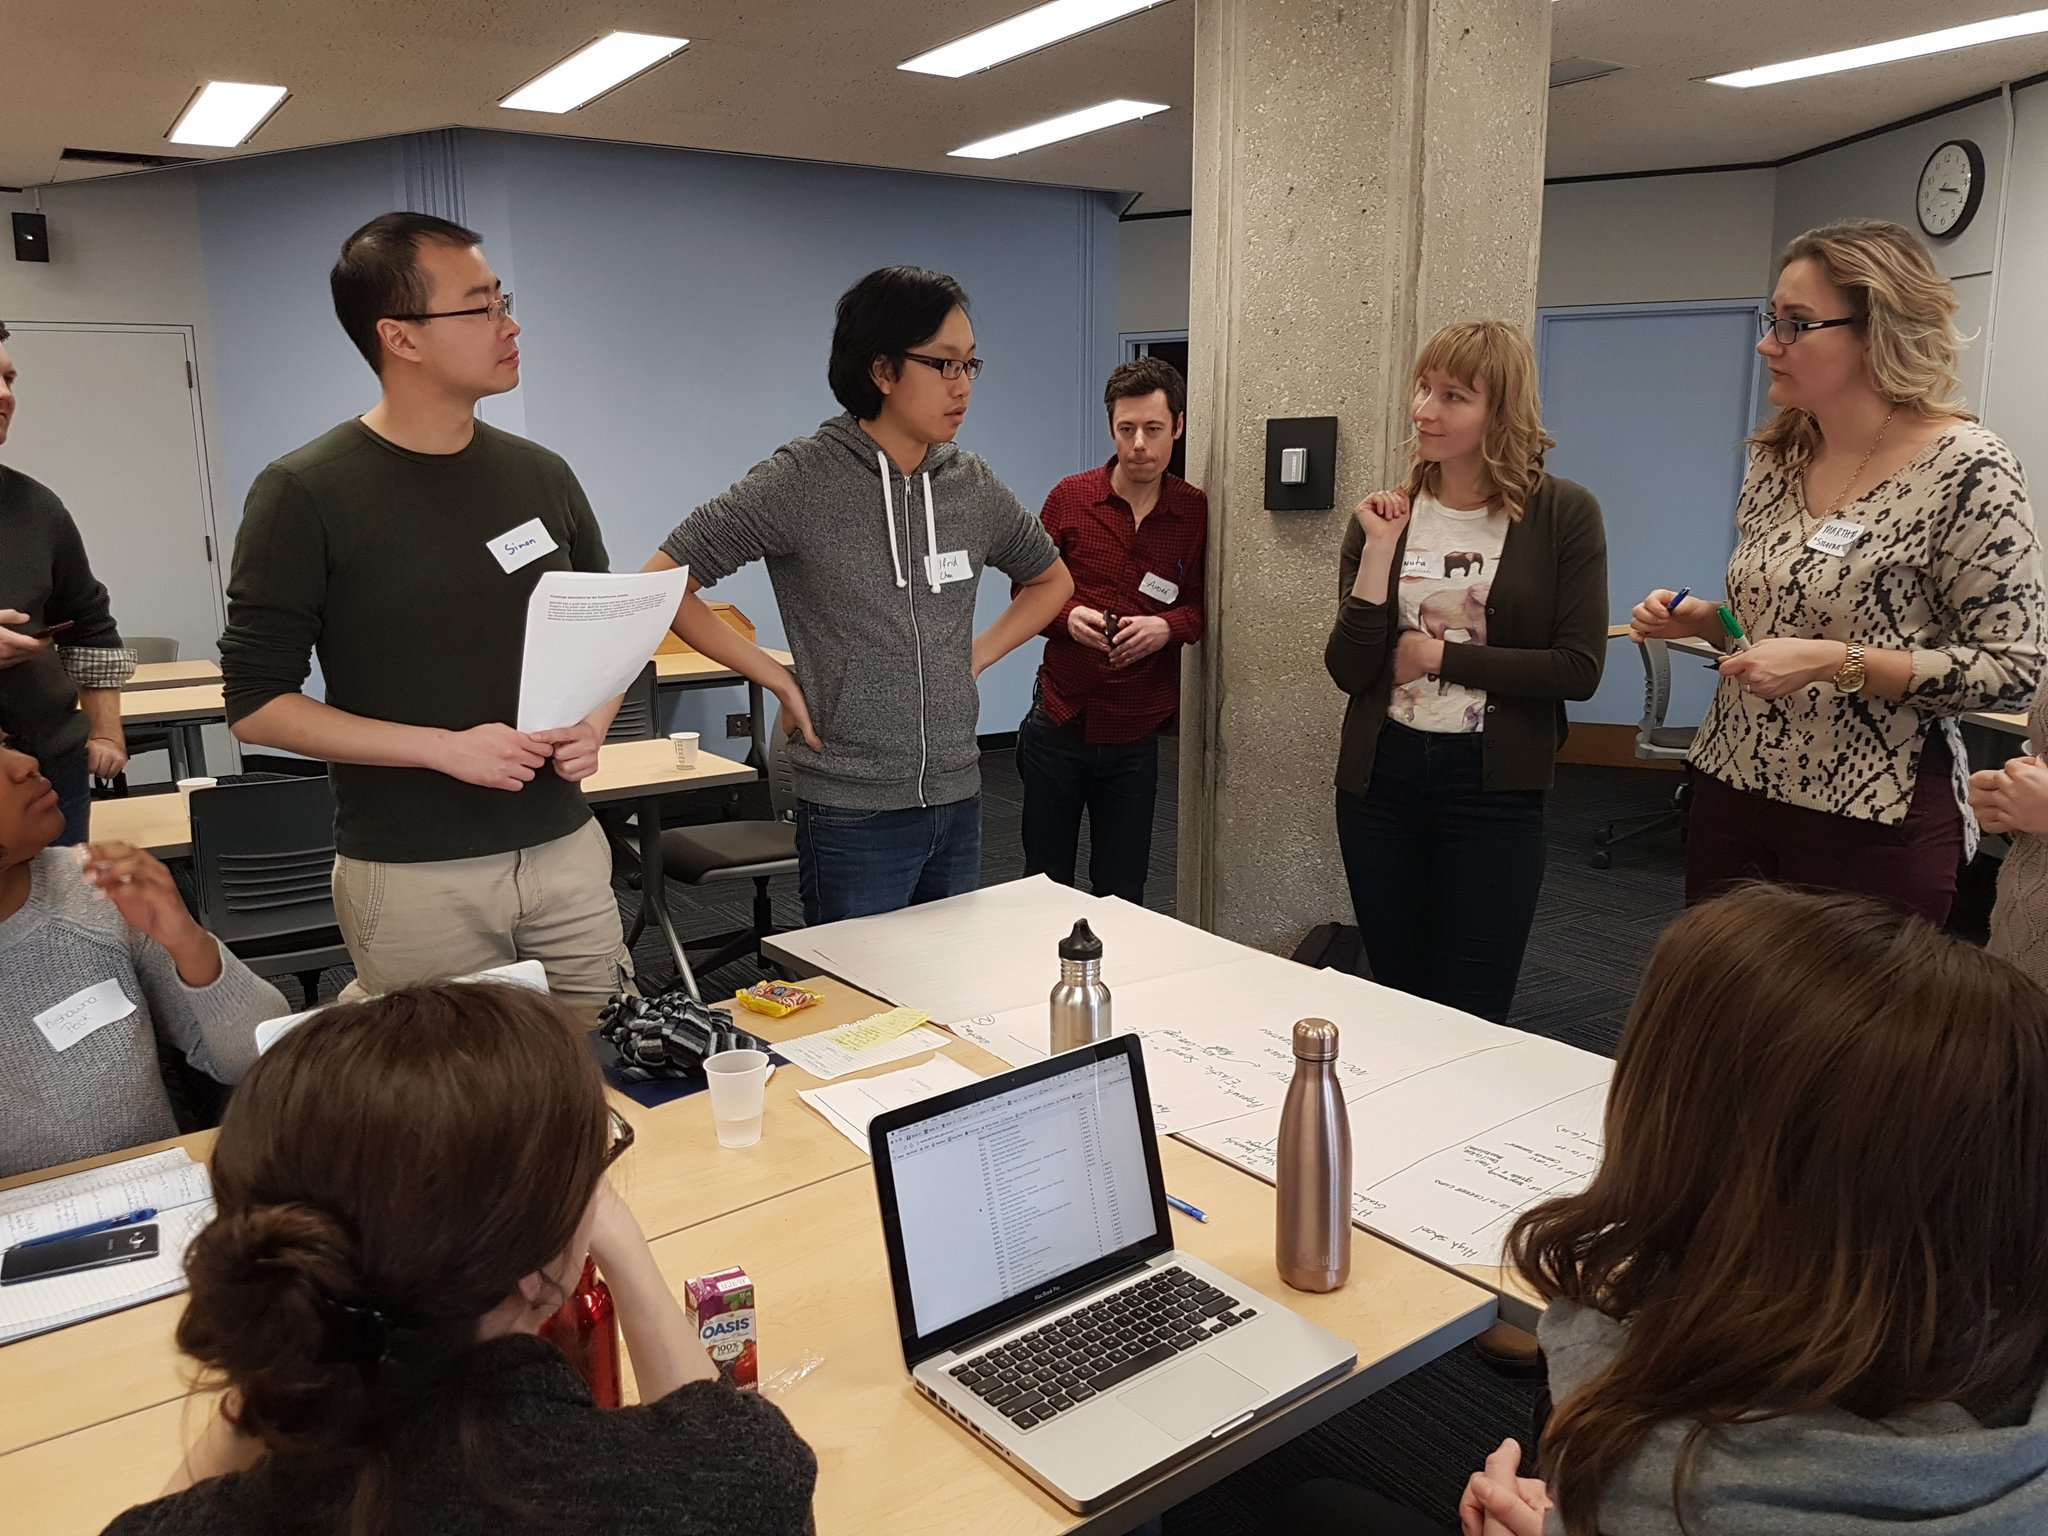 """""""We're through the questions, and now on to the user journey"""" lots of progress for the Student Pathways team! #CodeAcrossTO https://t.co/UQQU38v6hm"""